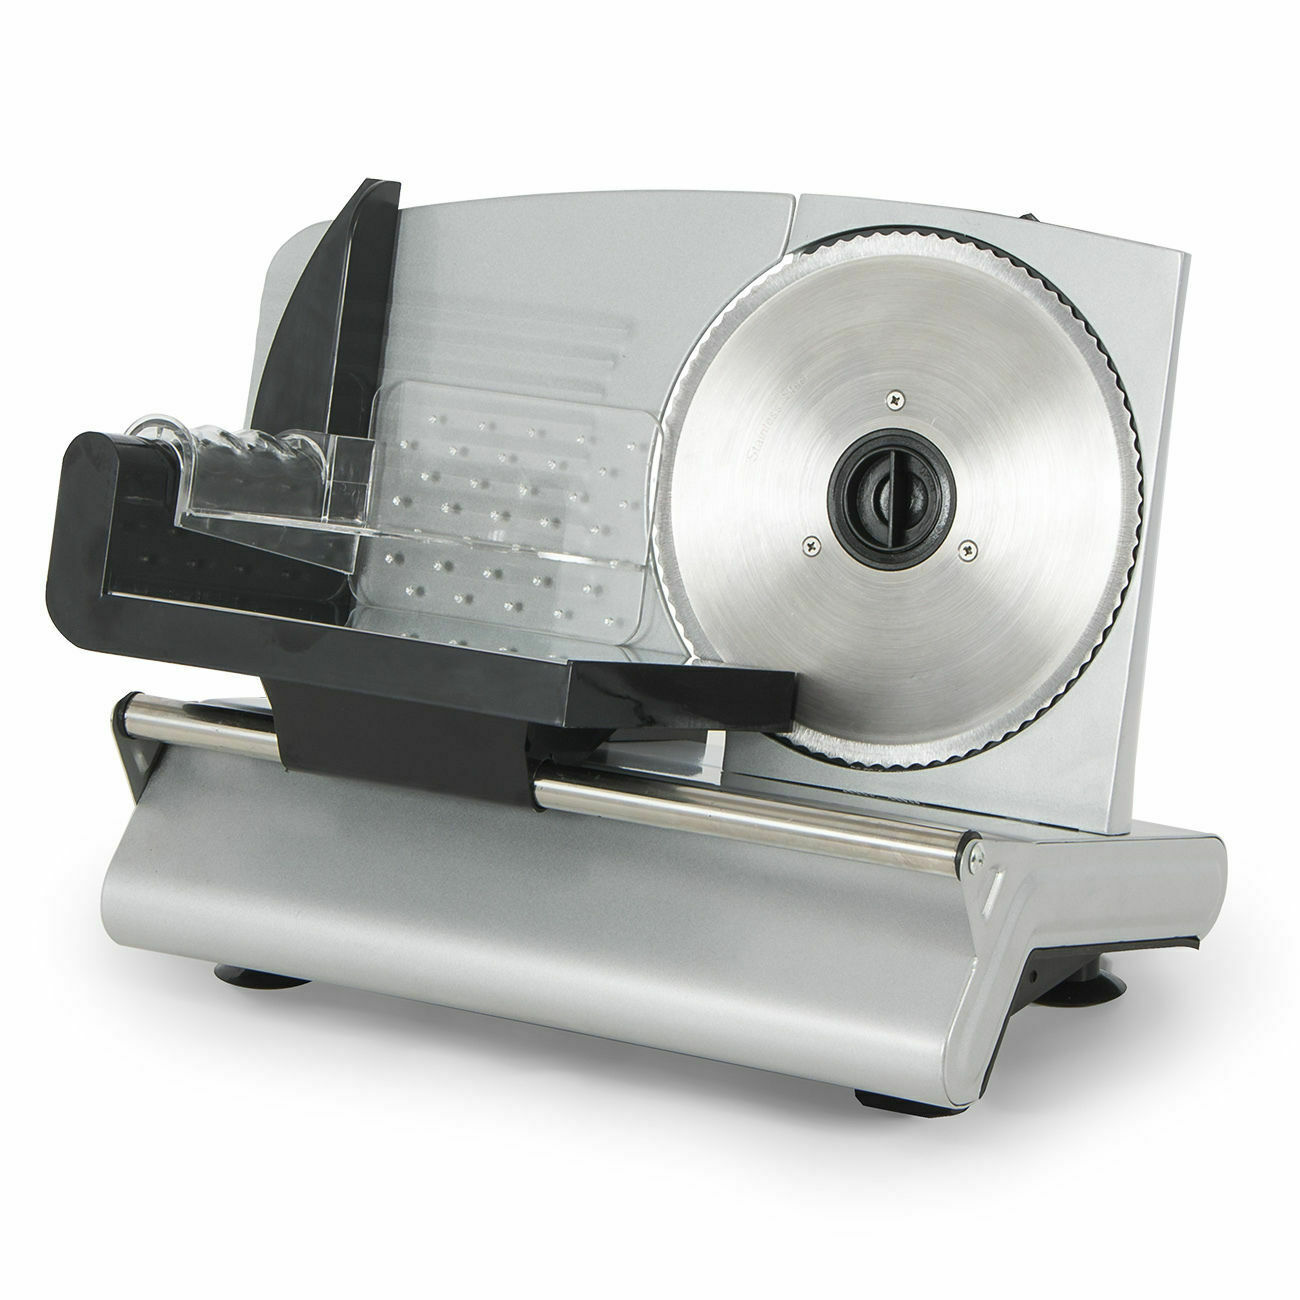 Electric Meat Slicer Stainless Steel Blade Bread Cheese Cutter Deli Food Machine 2